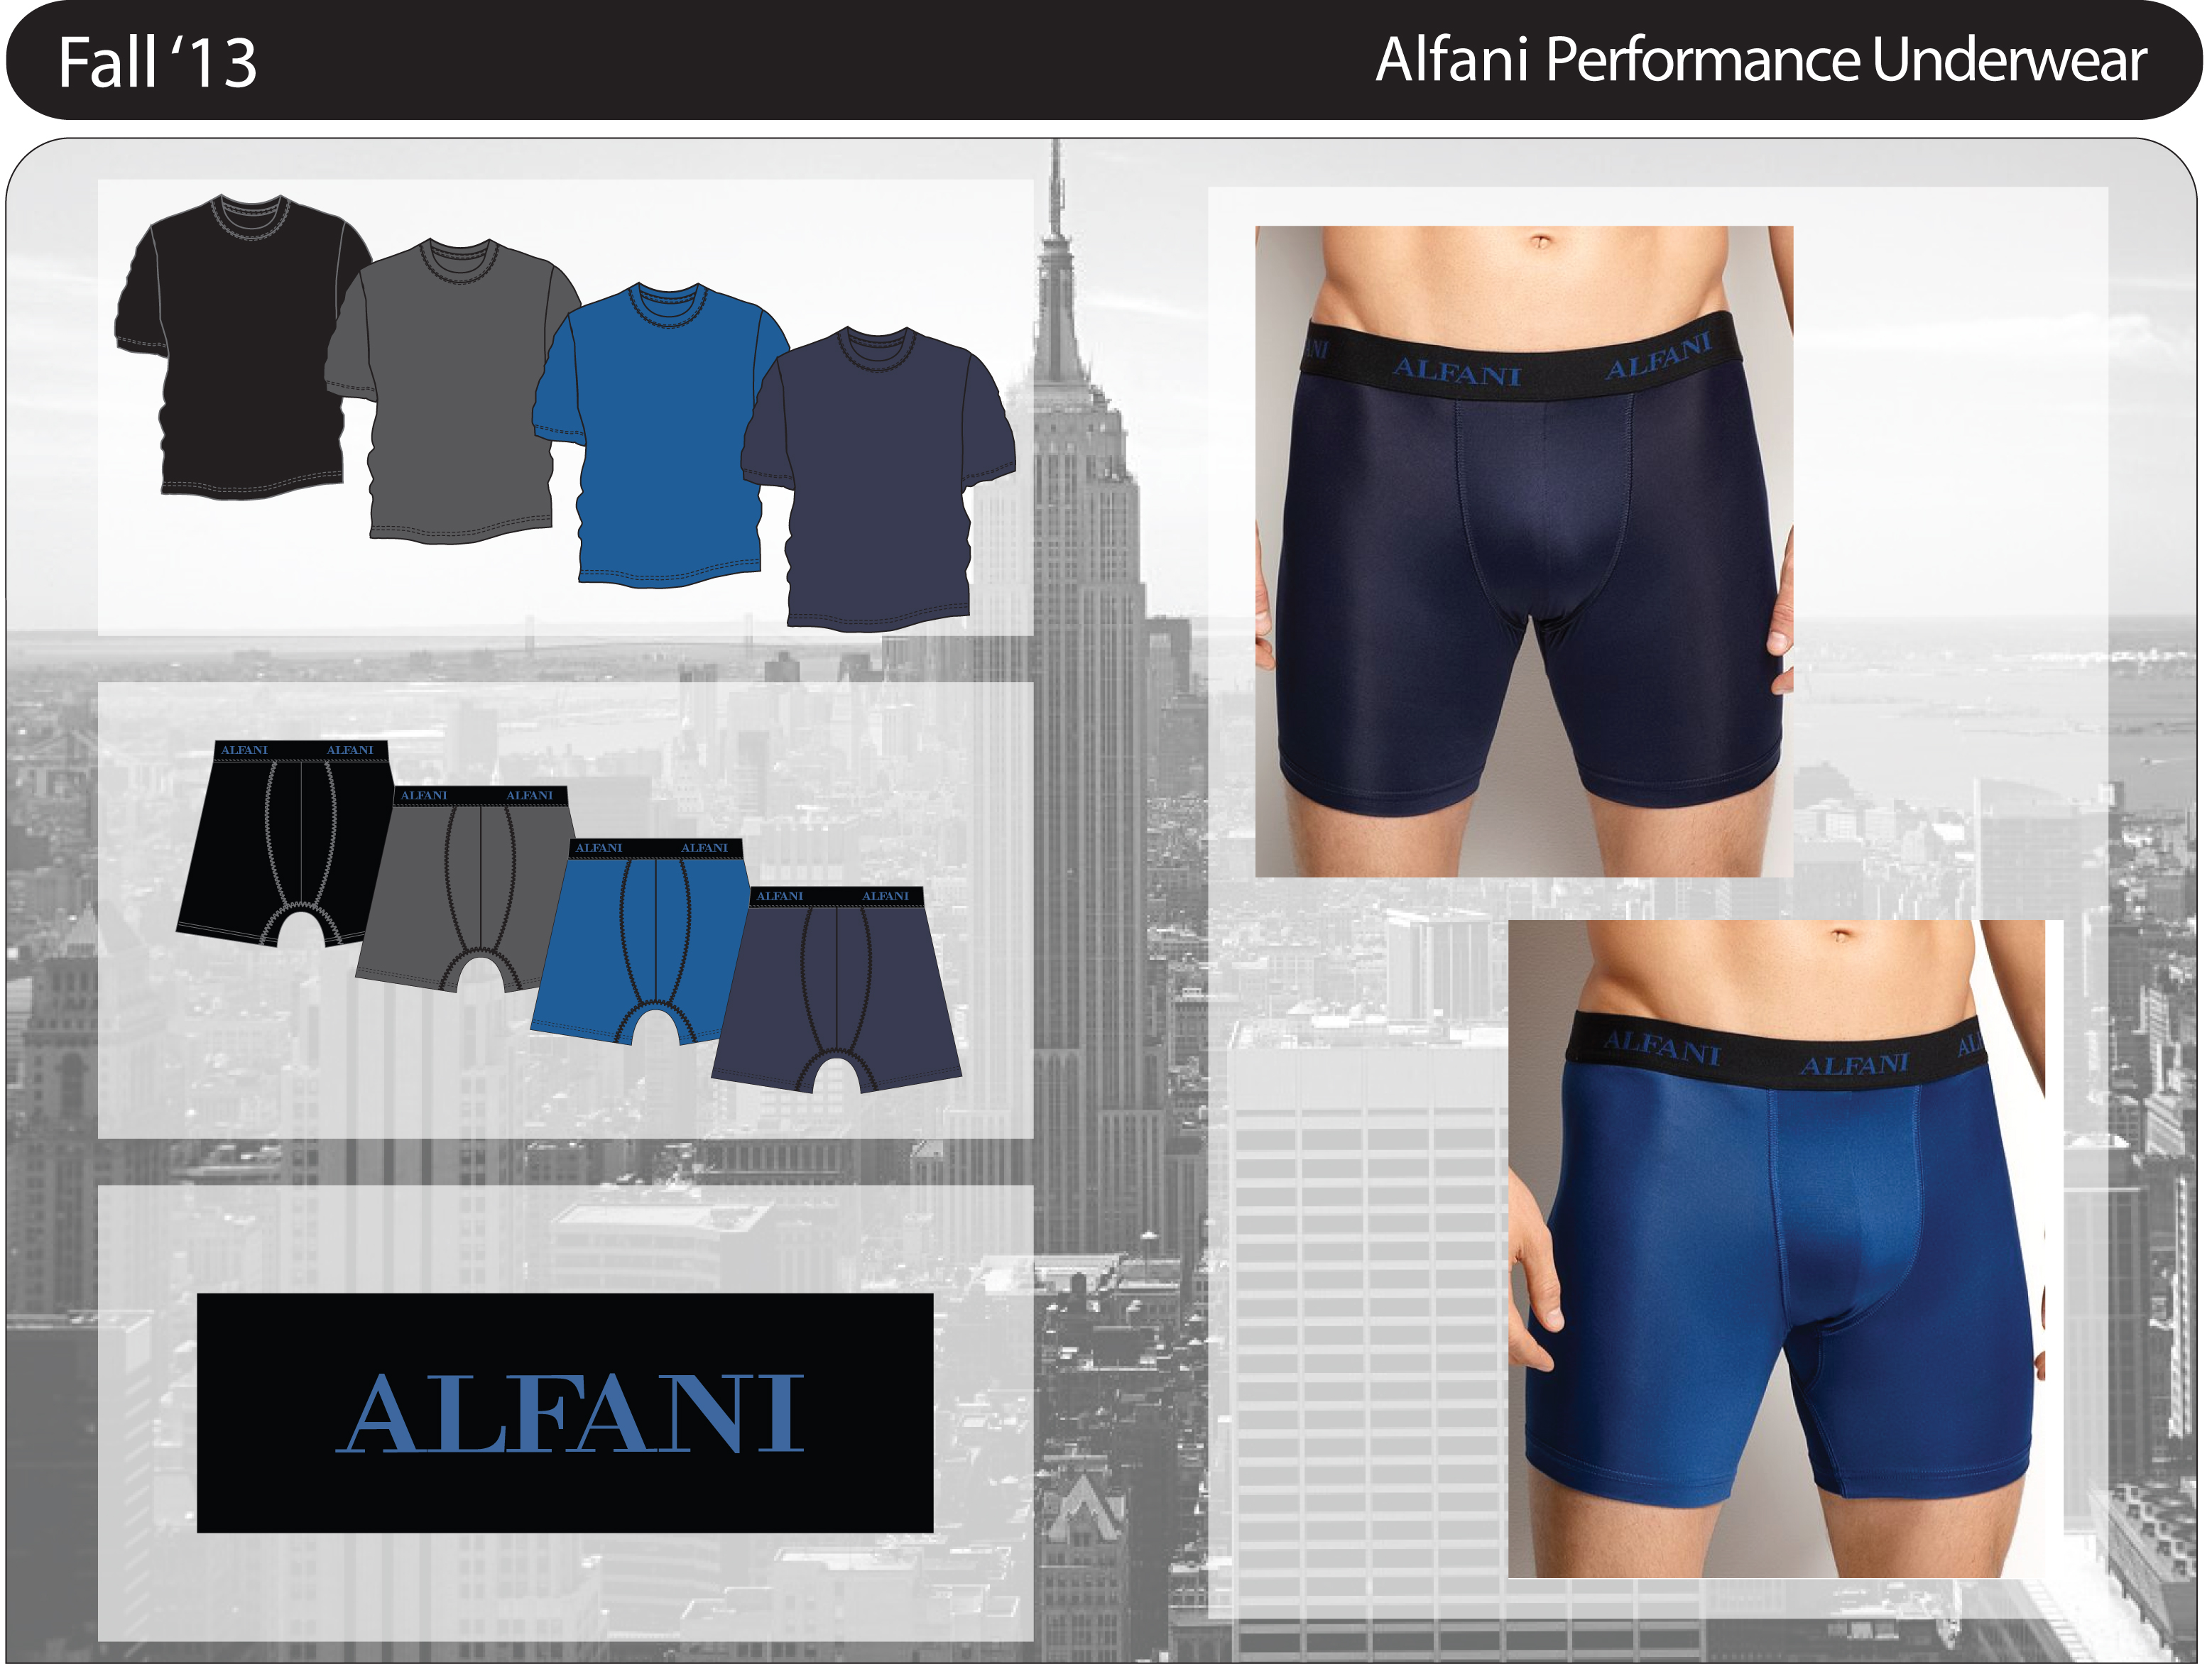 Aflani Performance Underwear.jpg